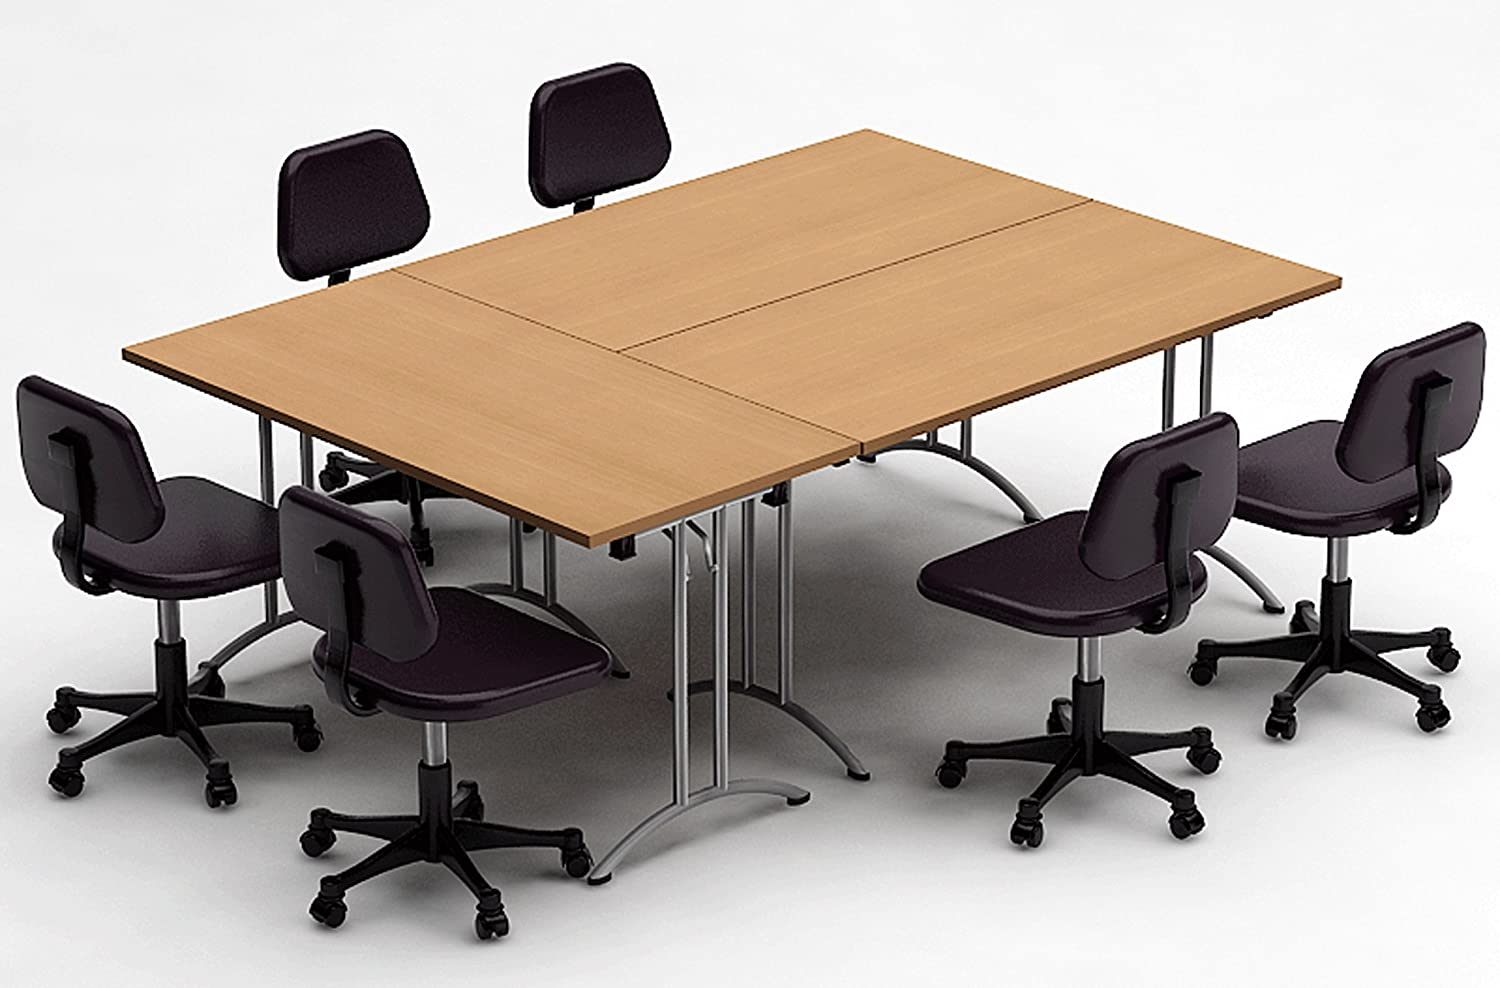 Conference Room Tables Office Products Chairs Not Included Assembled 3 Piece Combo Teamworktables 2908 Compact Space Maximum Collaboration Meeting Seminar Conference Tables Easy To Setup And Use Natural Beech